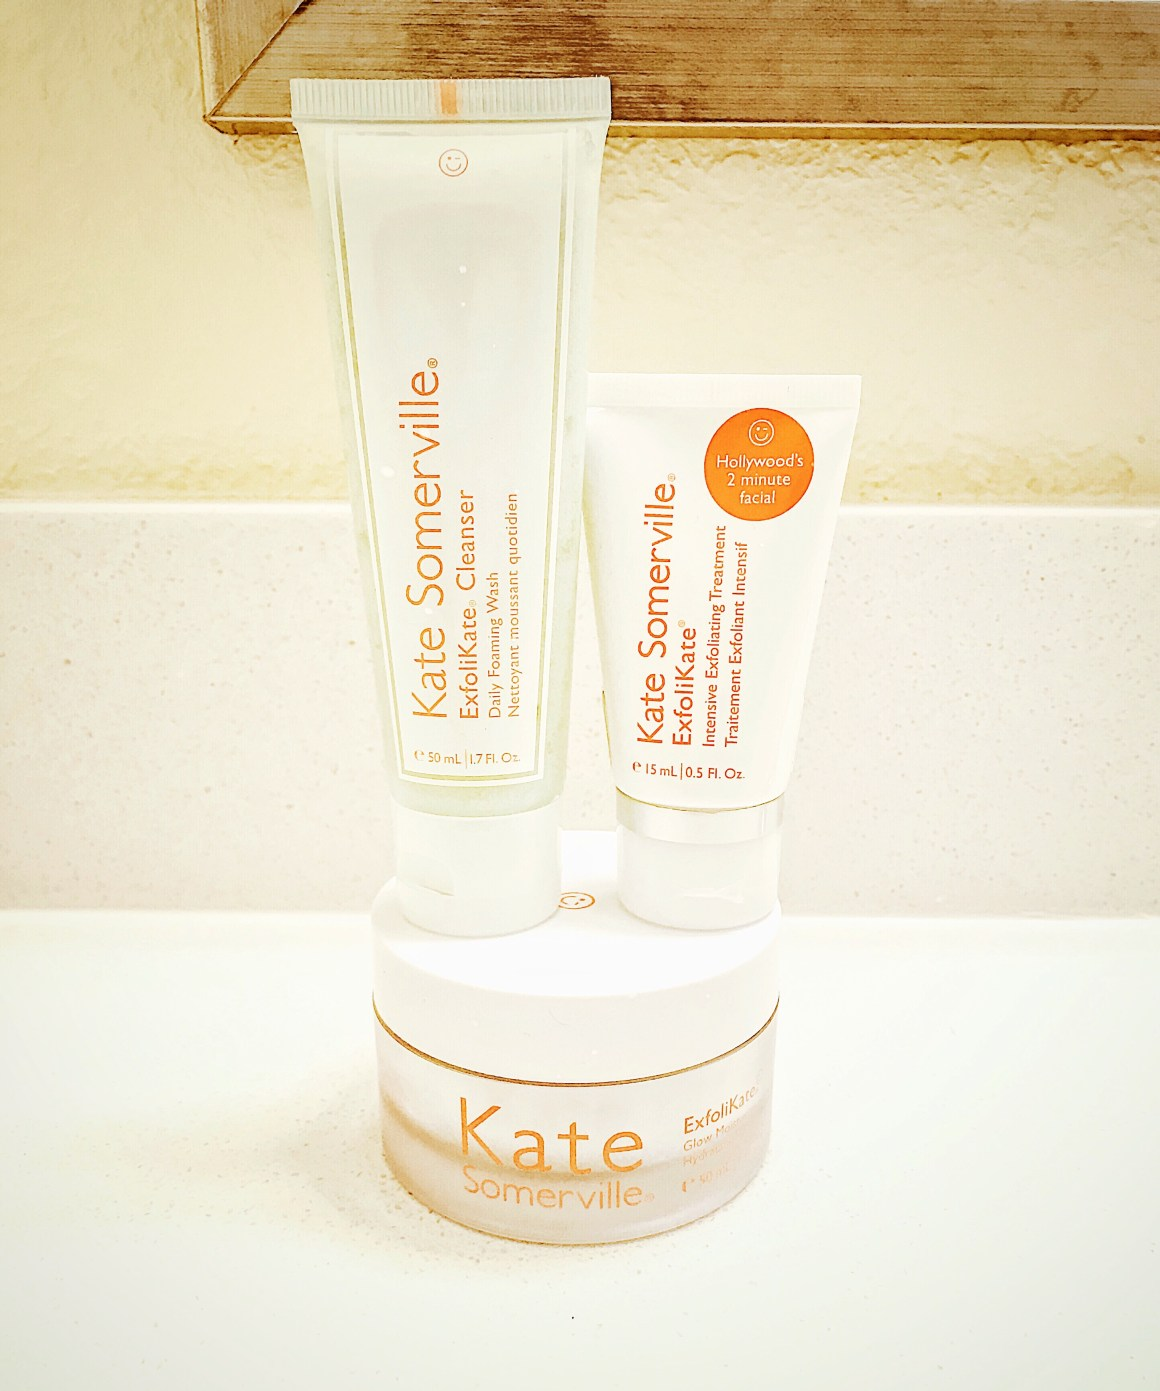 Glow with Kate Somerville